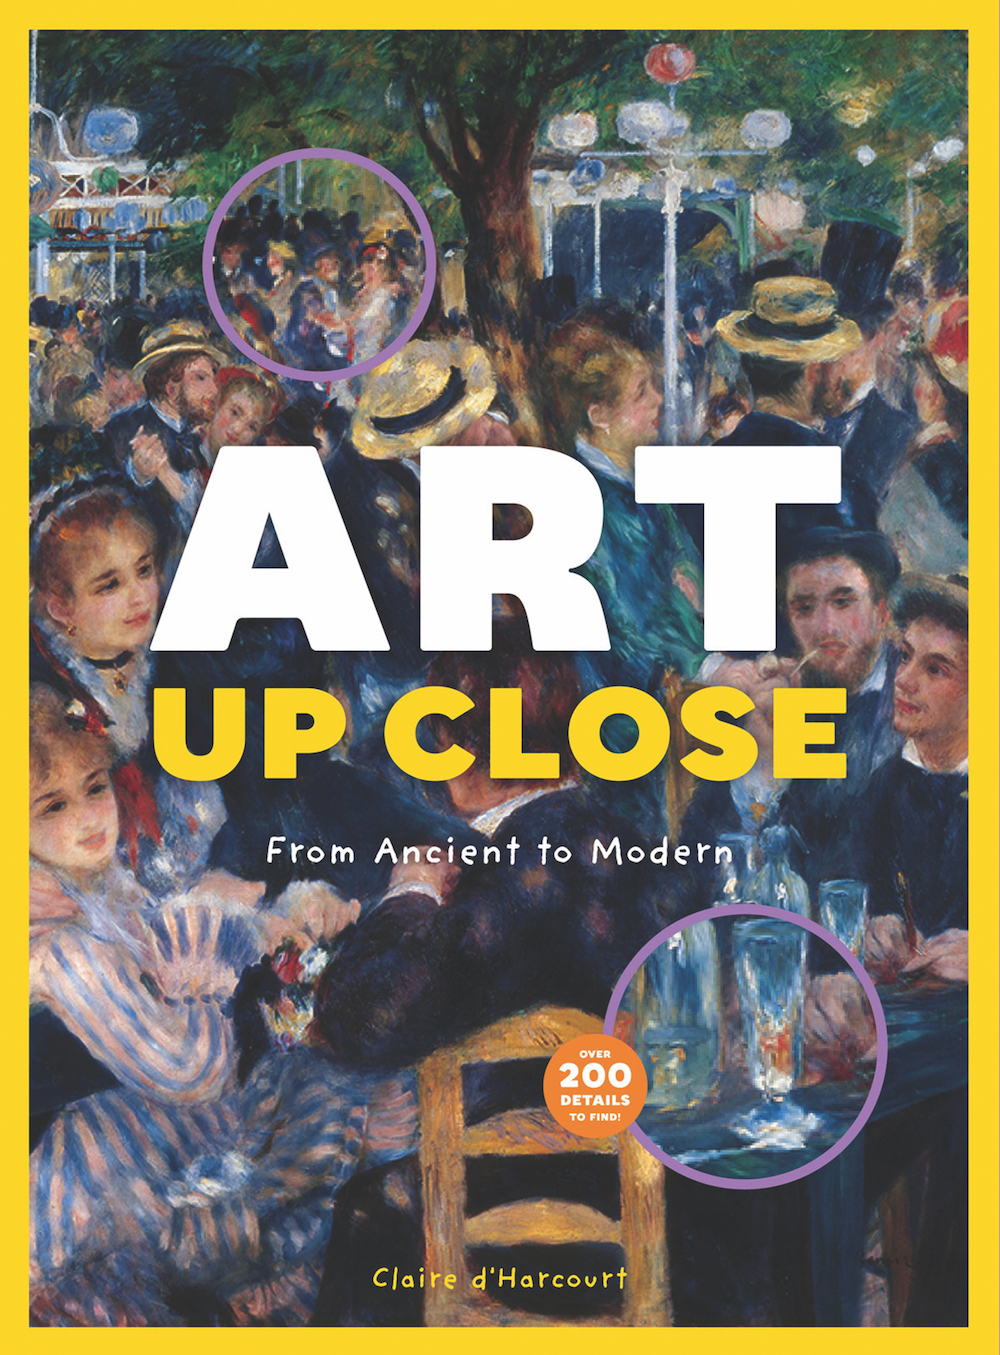 Gorgeous look-and-find books for kids: Art Up Close by Claire d'Harcourt